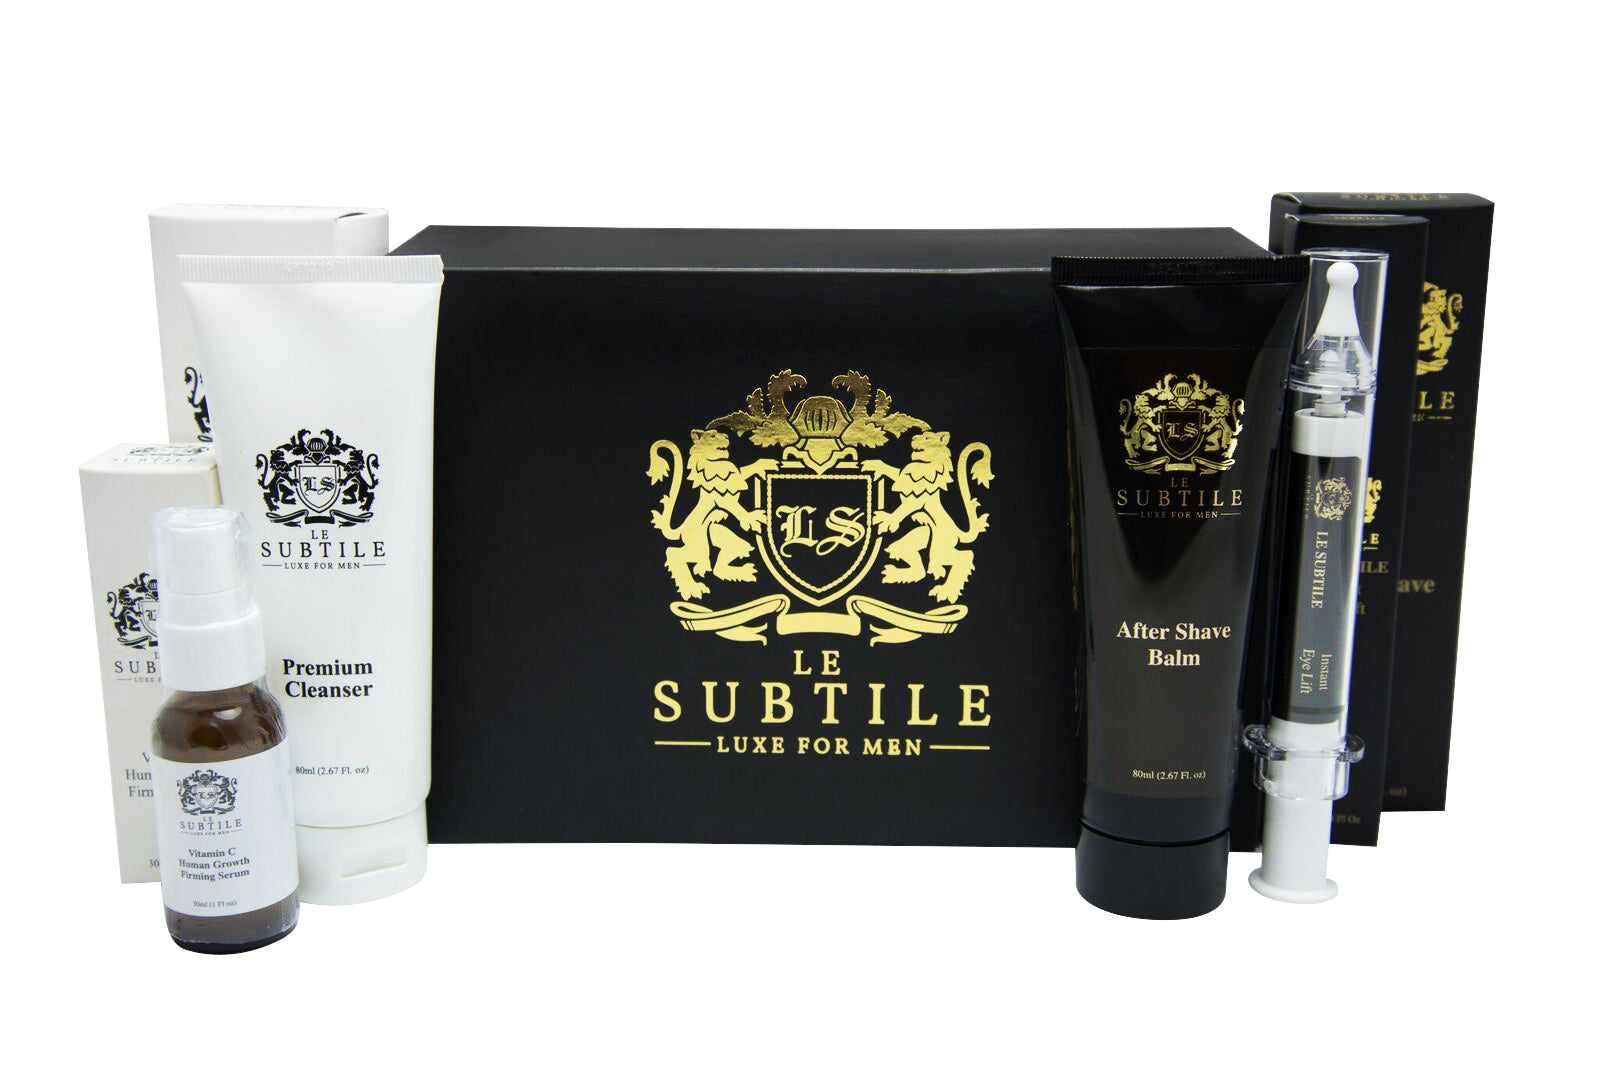 LE SUBTILE Collection Luxury Box - 4 Full Size Products